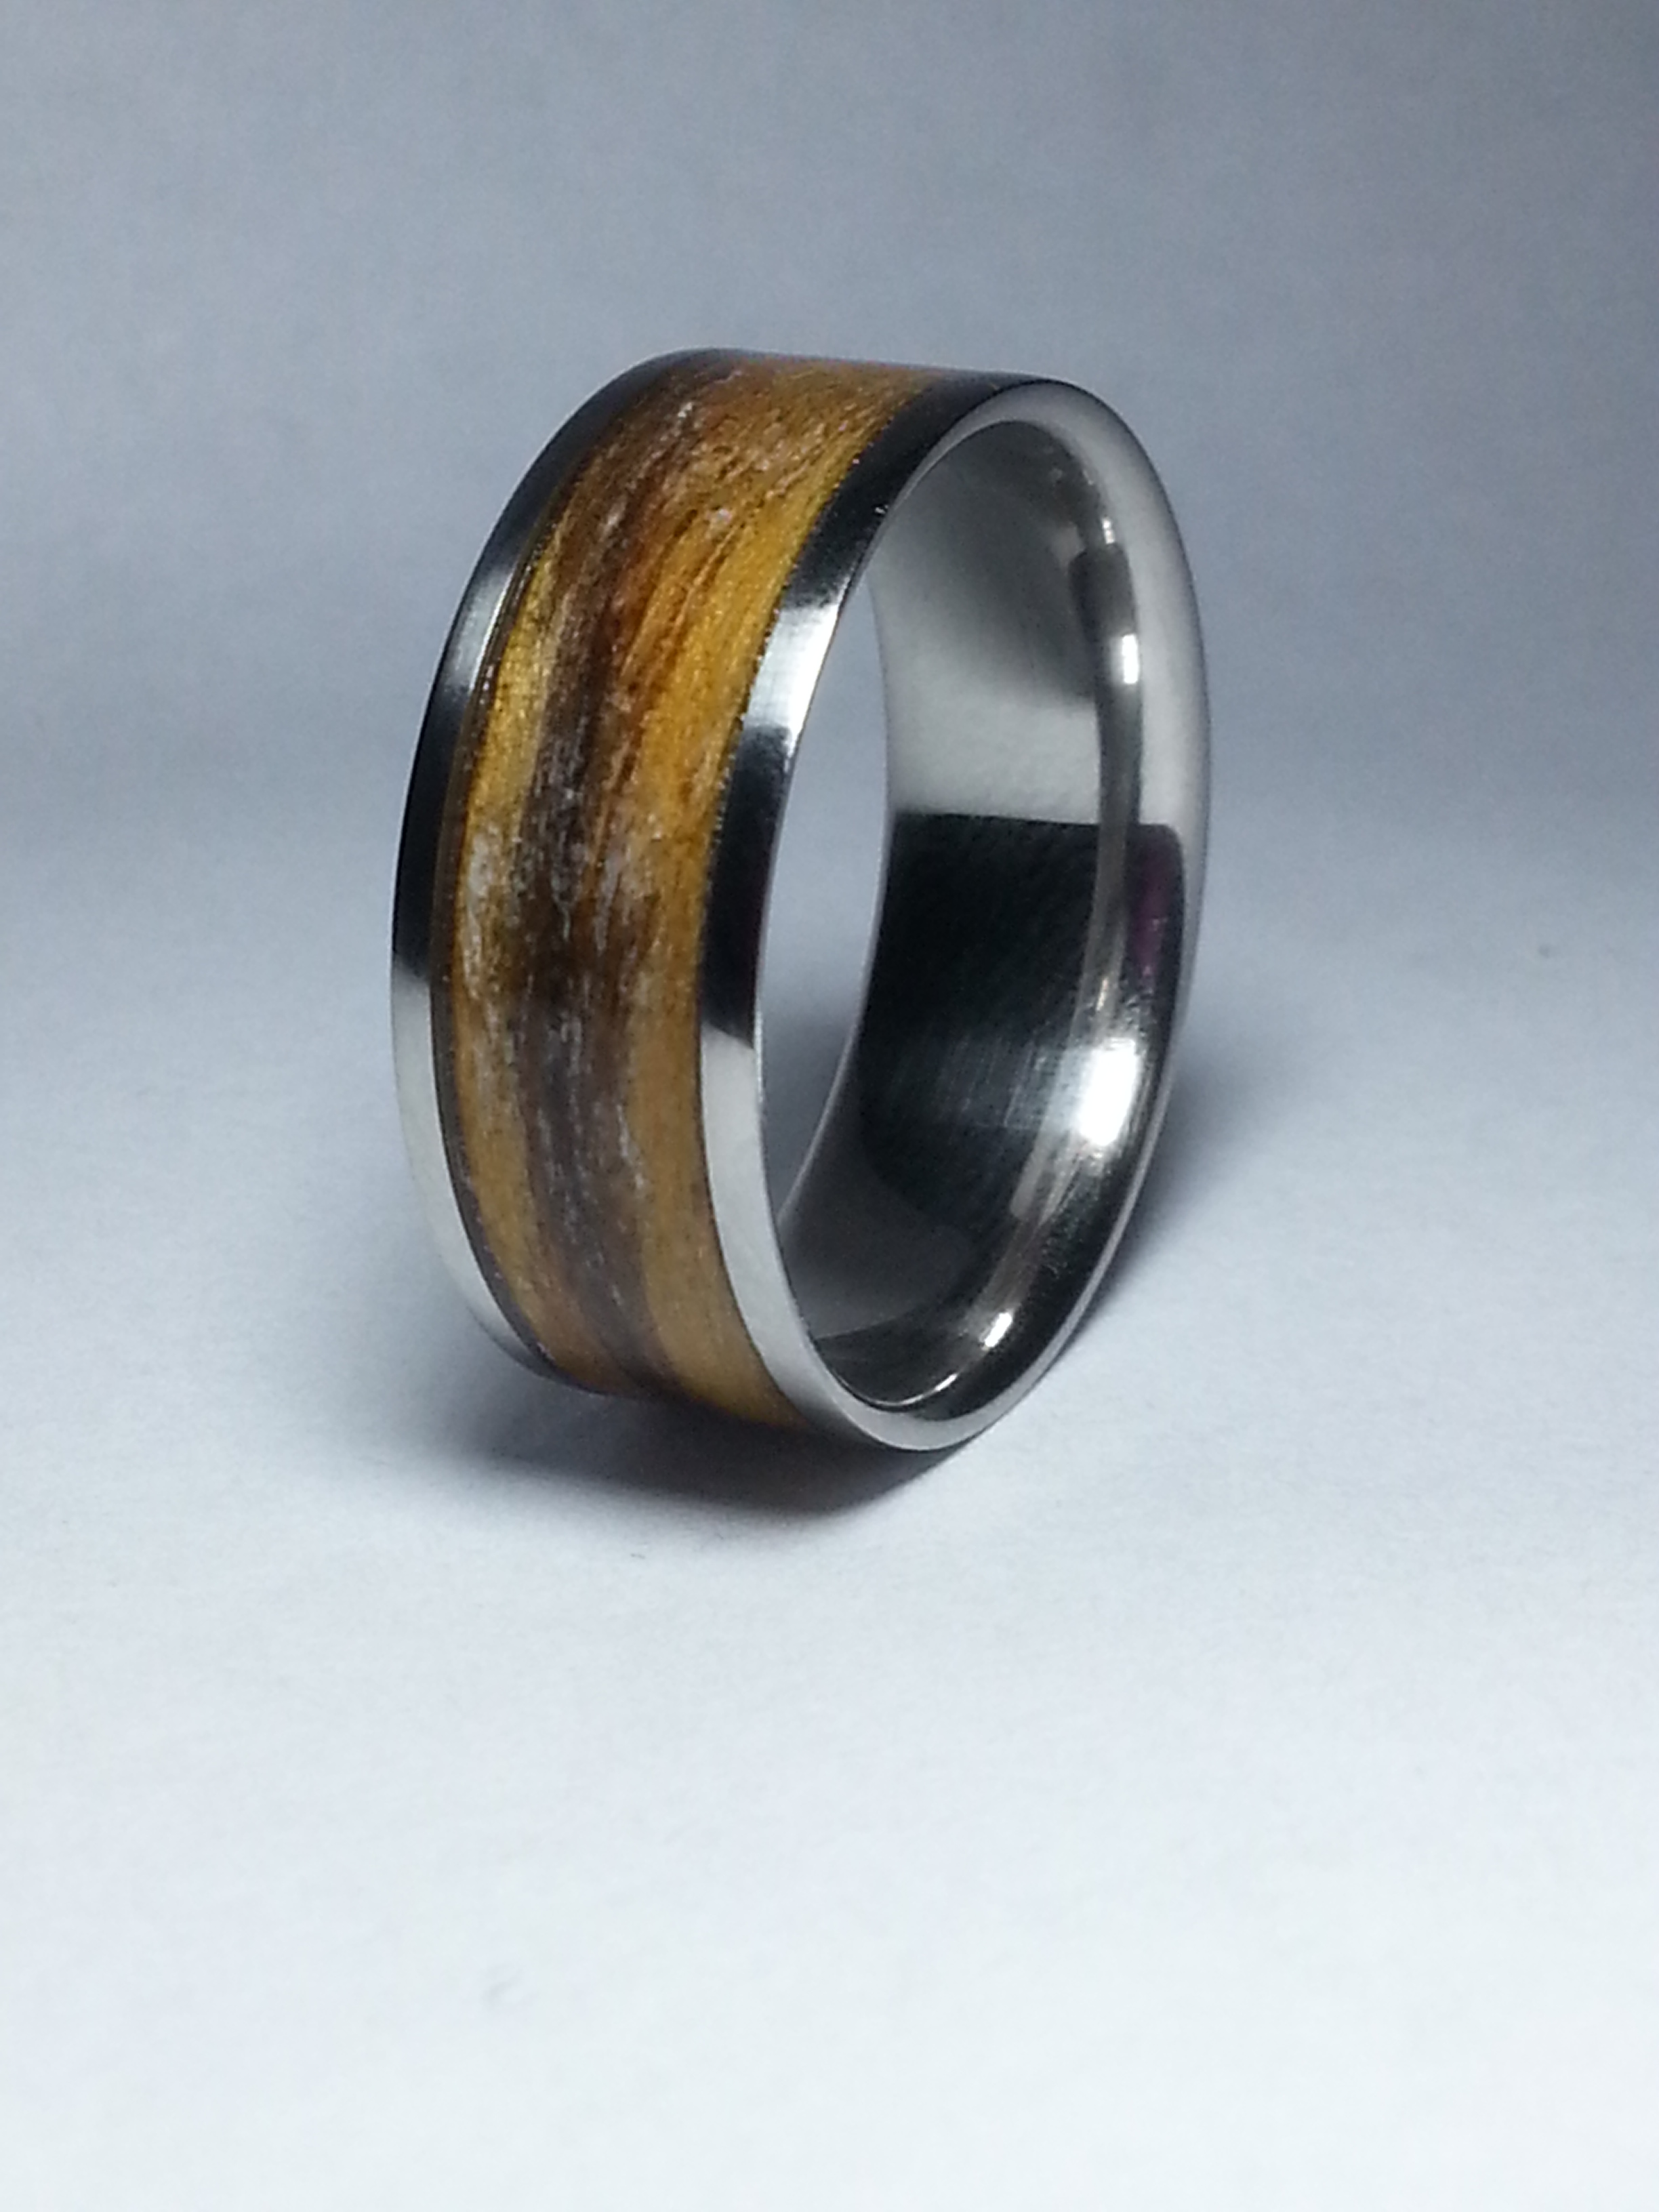 Stainless Steel Ring + Olive wood